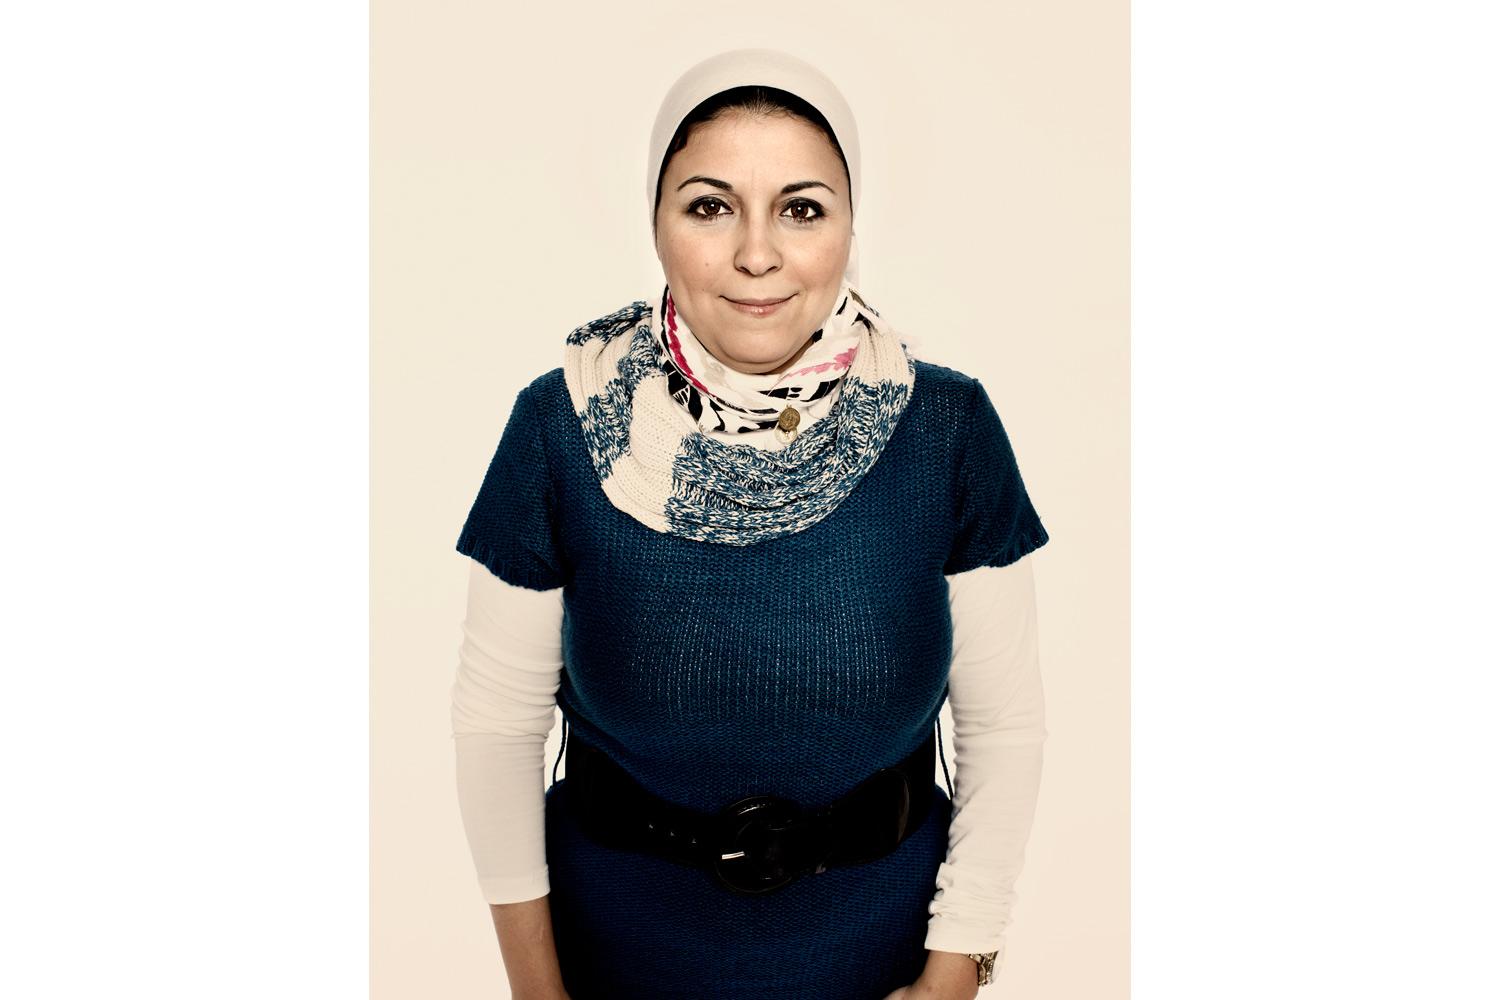 "Esraa Abdel Fatah, a.k.a.  Facebook Girl,  is a prominent Egyptian Internet activist and co-founder of the April 6 movement. ""They were my greatest days. I could see the utopia of Egyptian society in Tahrir Square. I think those days will be rooted in Egyptian history,  she says."